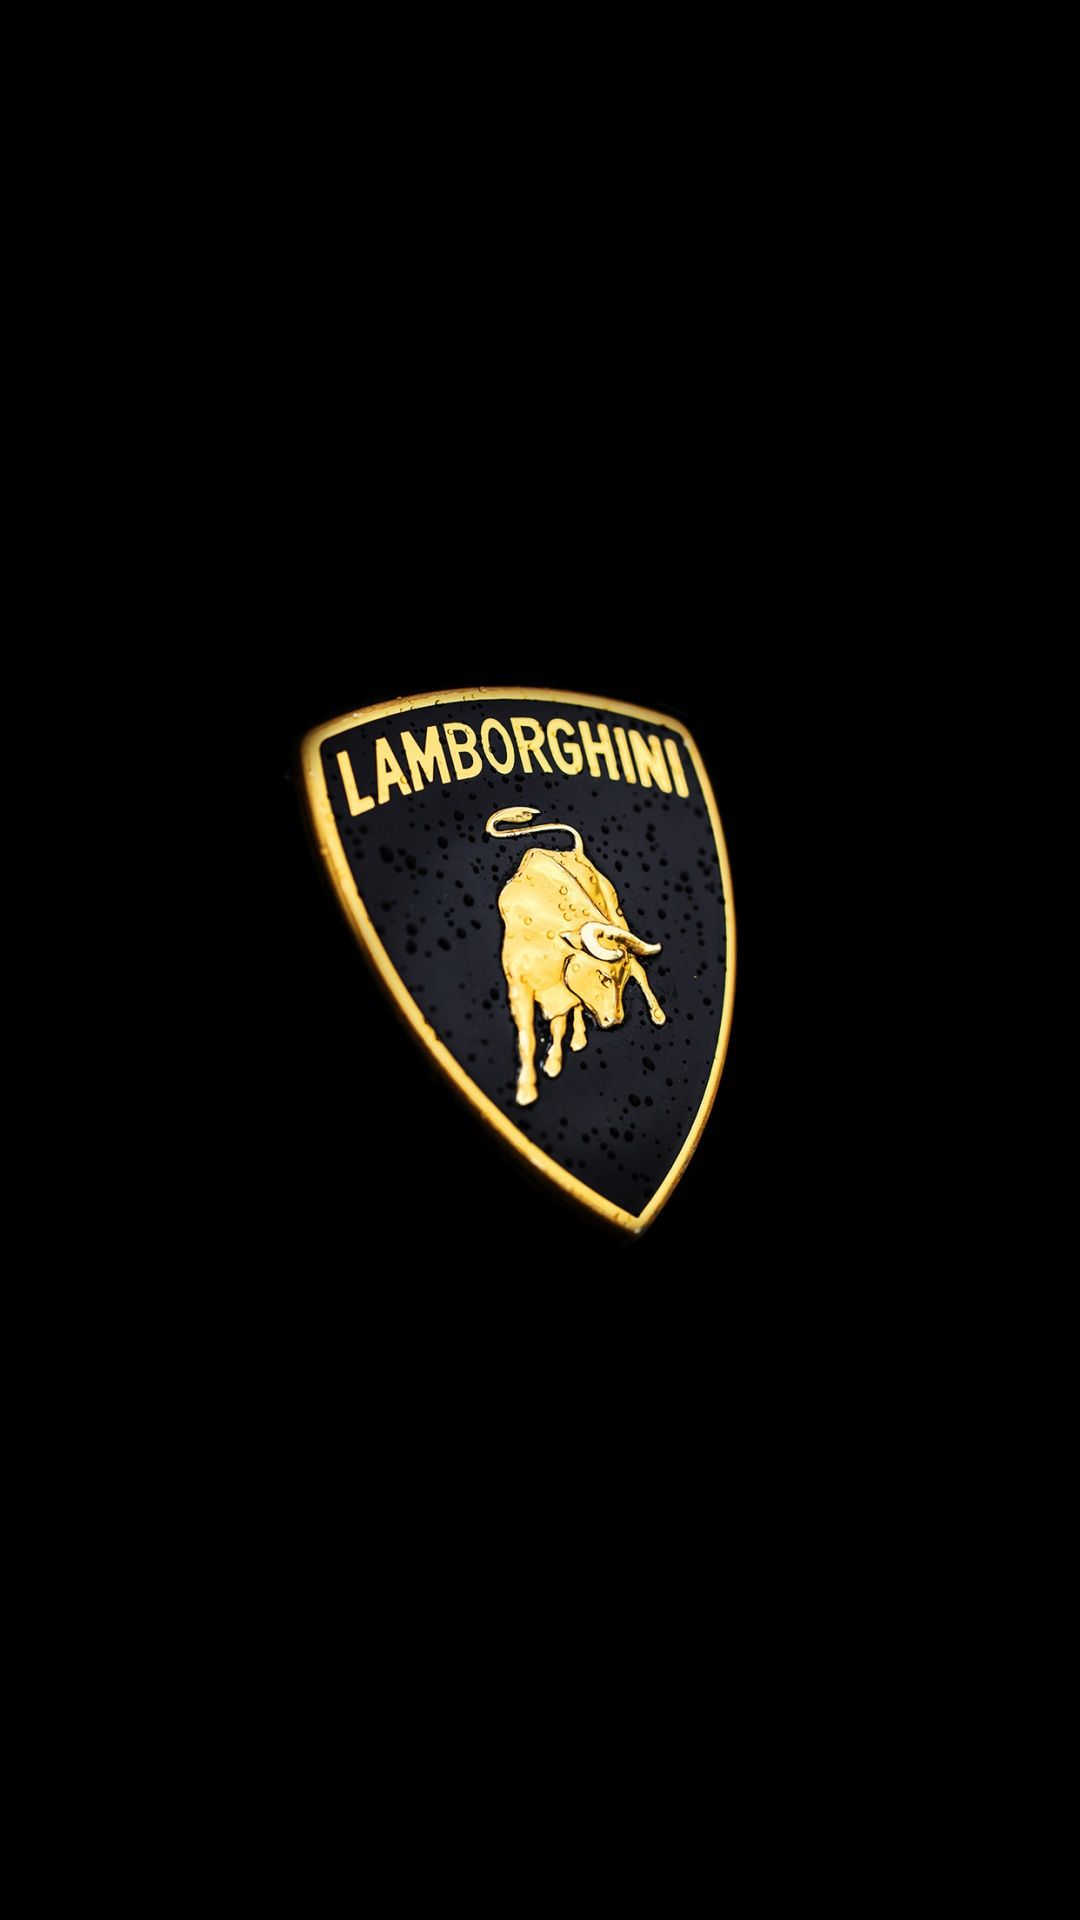 Iphone 6 wallpaper tumblr cars - Lamborghini Bull Taurus Logo Dark Iphone 6 Hd Wallpaper Http Freebestpicture